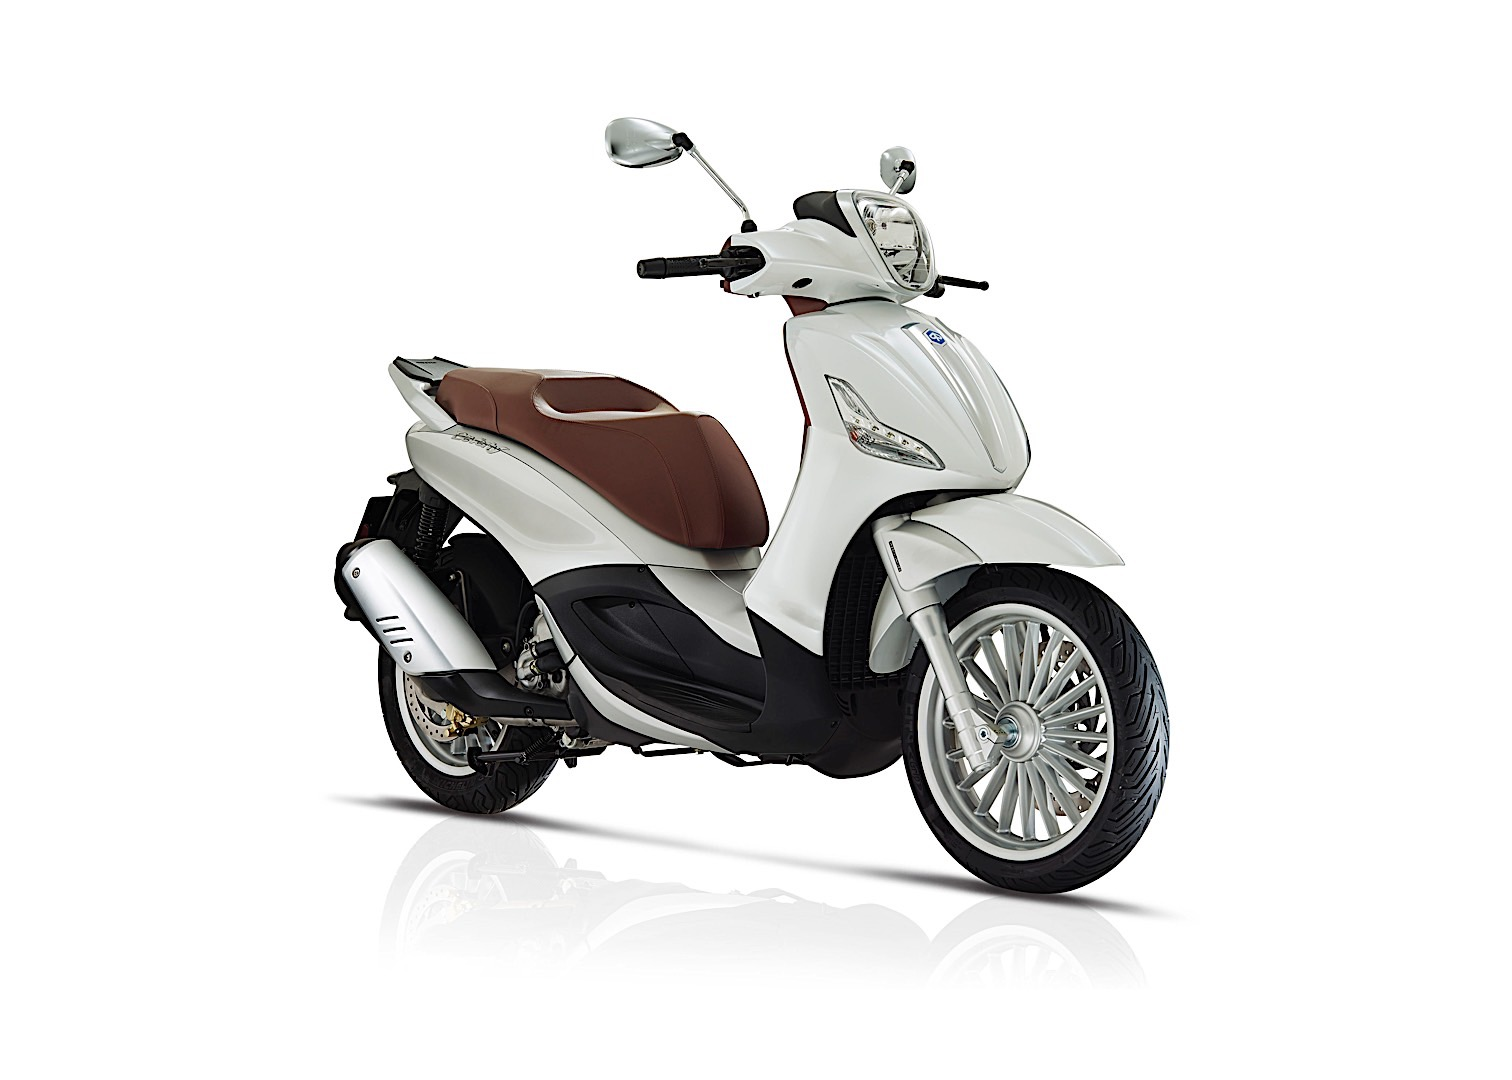 piaggio revises beverly range for 2017 - autoevolution